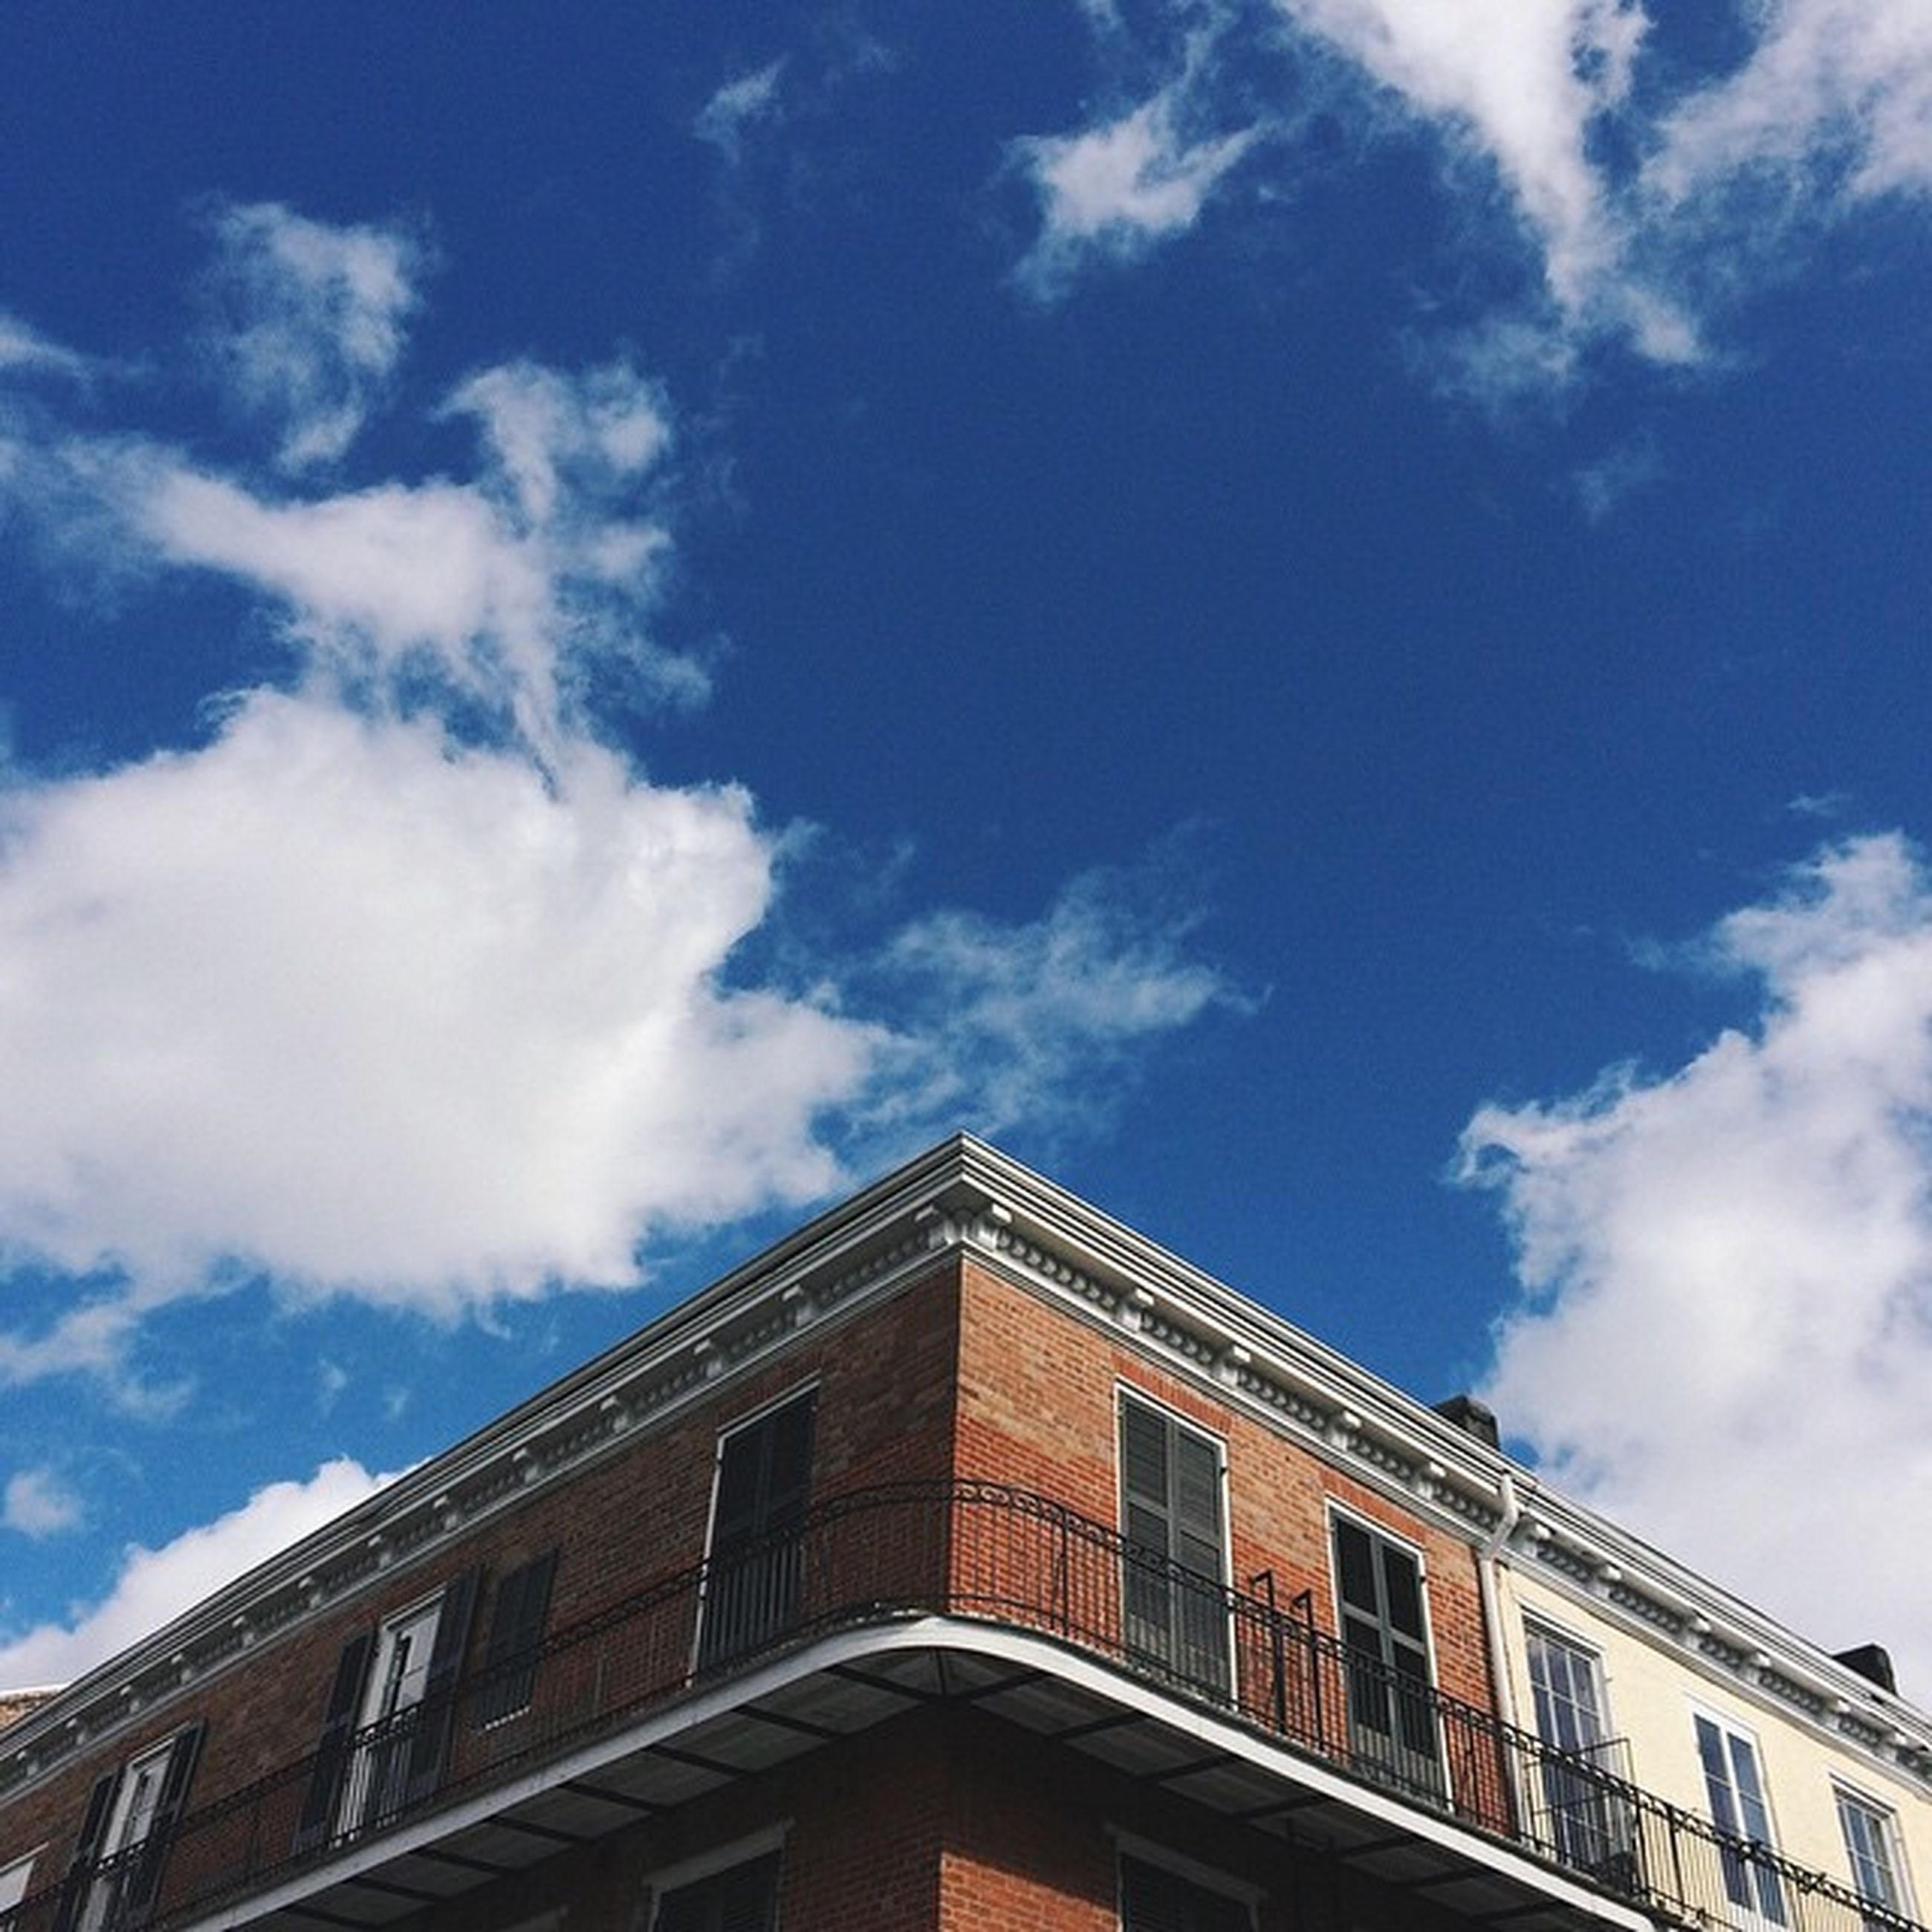 architecture, built structure, low angle view, building exterior, sky, blue, cloud - sky, cloud, building, high section, window, residential building, residential structure, day, outdoors, city, house, no people, railing, cloudy